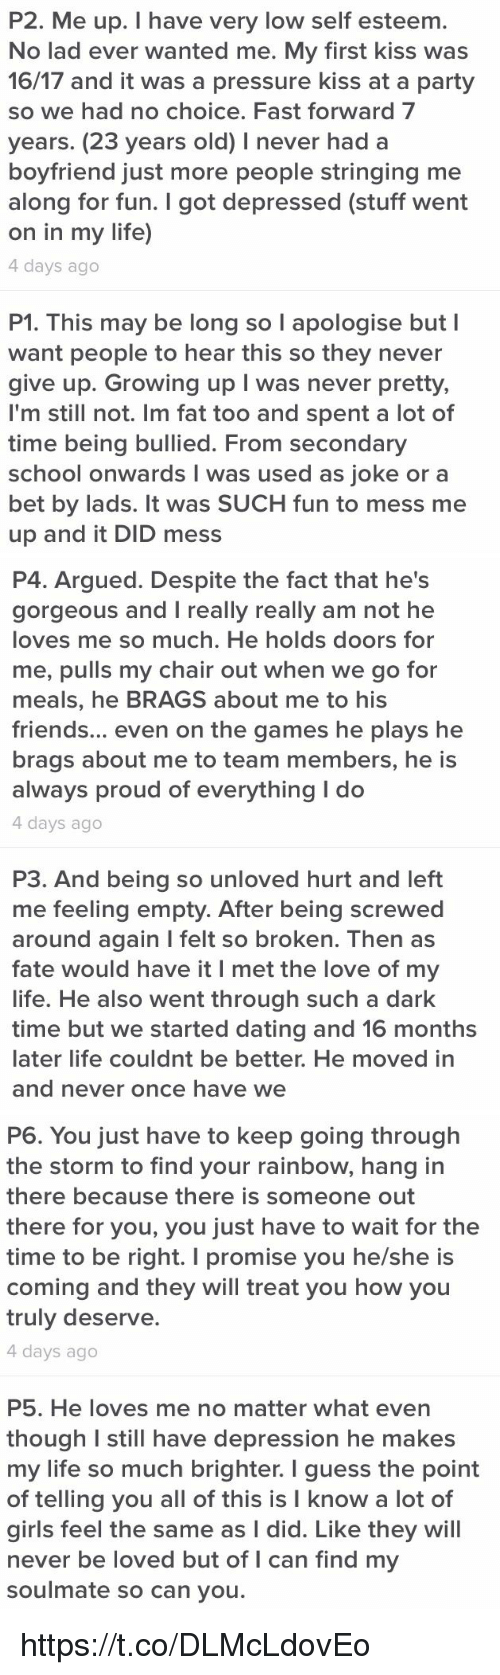 Started dating someone with depression